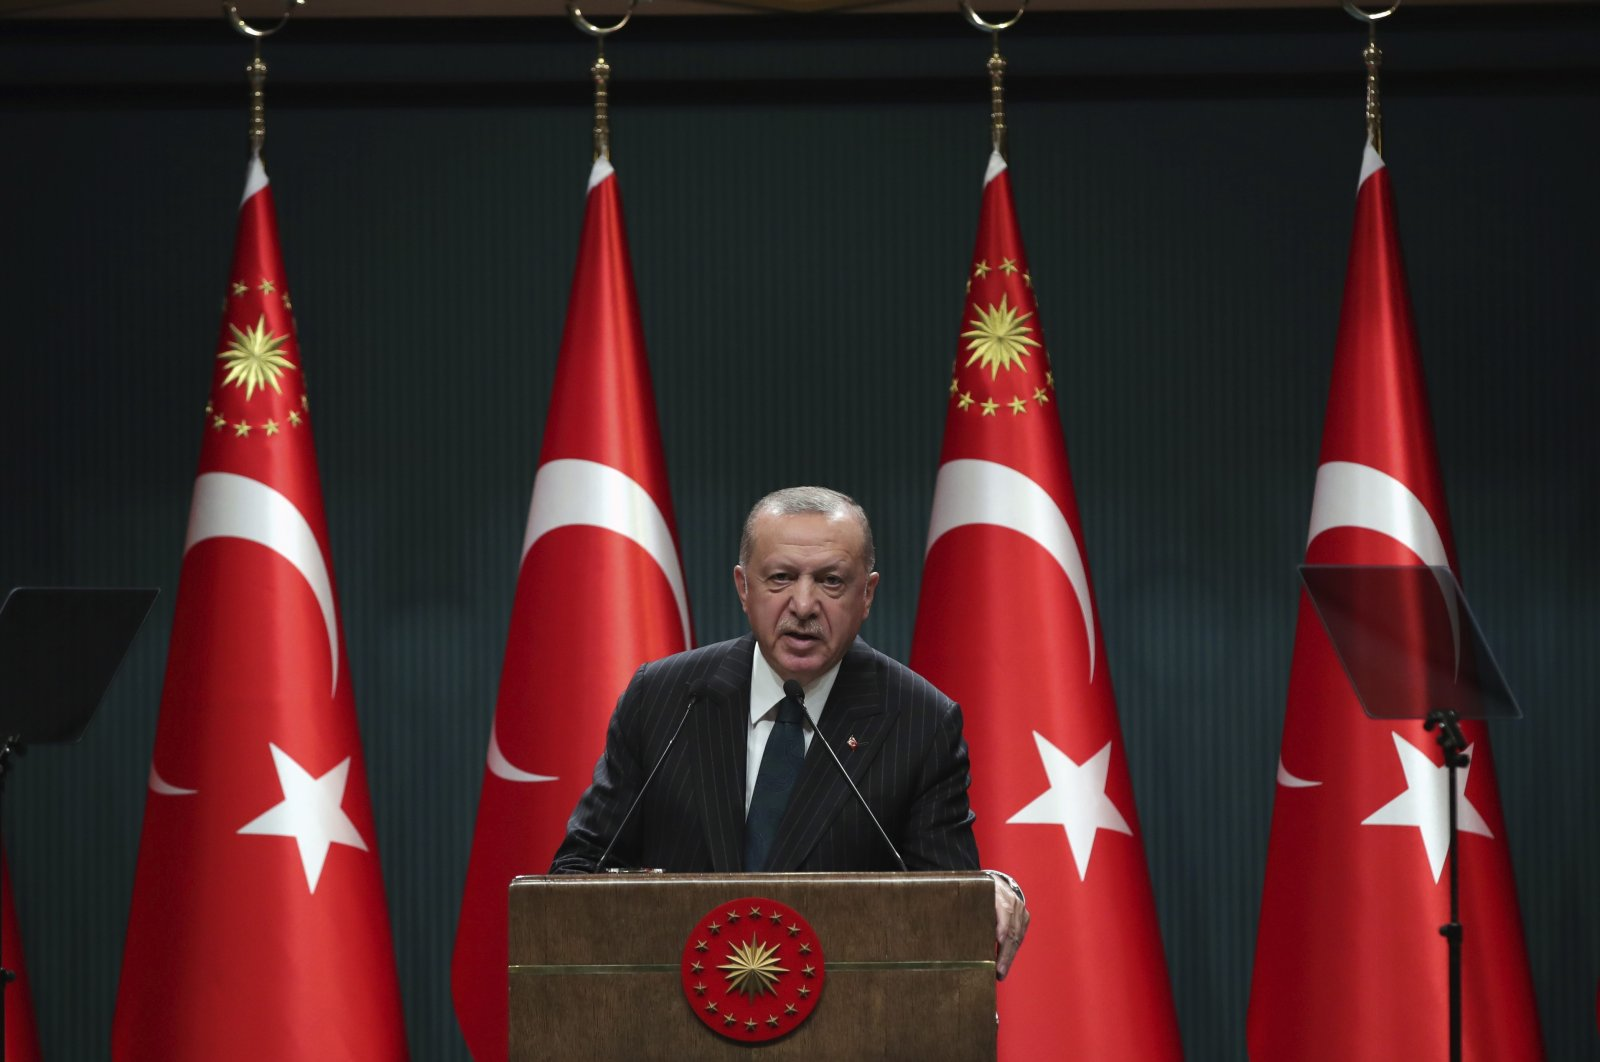 President Recep Tayyip Erdoğan speaks during a televised address following a weekly Cabinet meeting, in Ankara, Turkey, Aug. 24, 2020. (Turkish Presidency via AP)